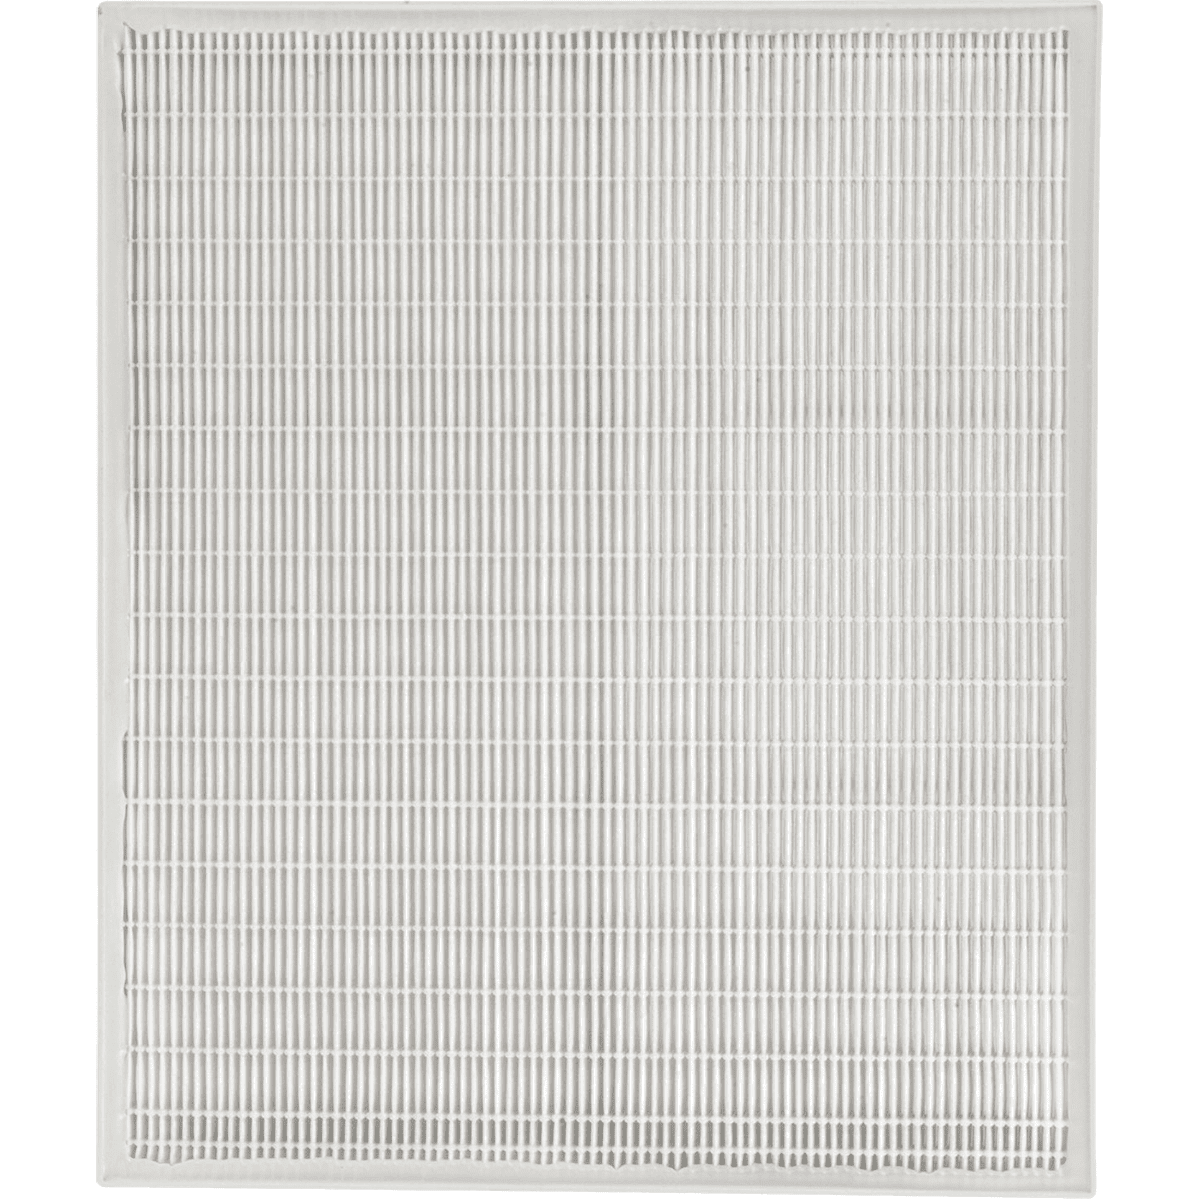 Filter-Monster Large HEPA Replacement Filter Compatible with Whirlpool Air Purifiers (1183054G)